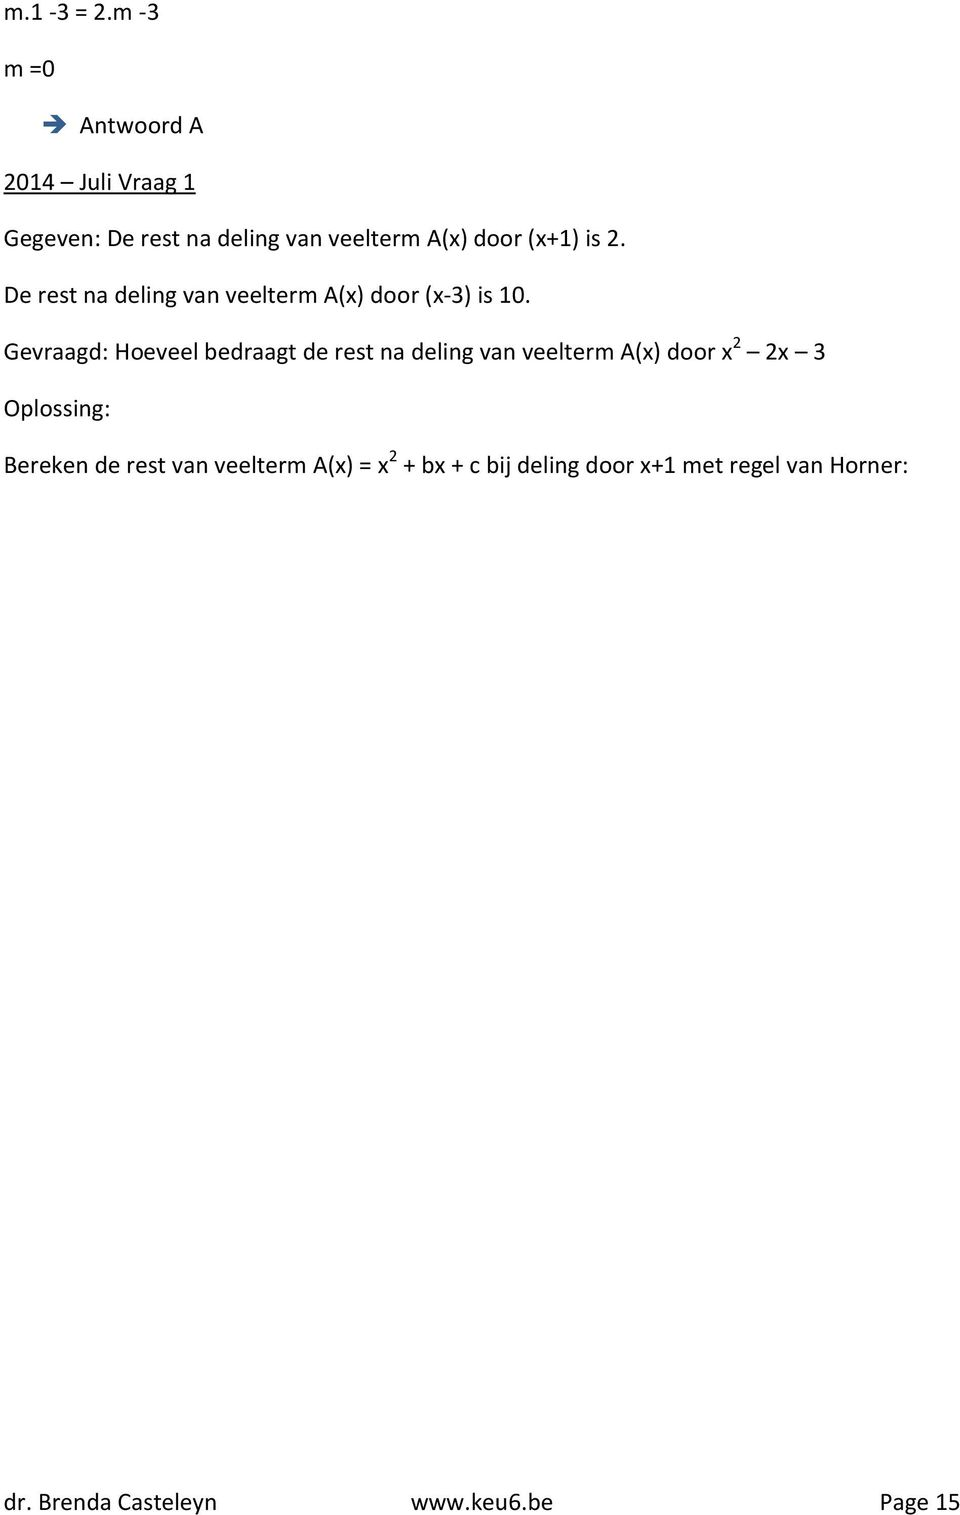 (x+1) is 2. De rest na deling van veelterm A(x) door (x-3) is 10.